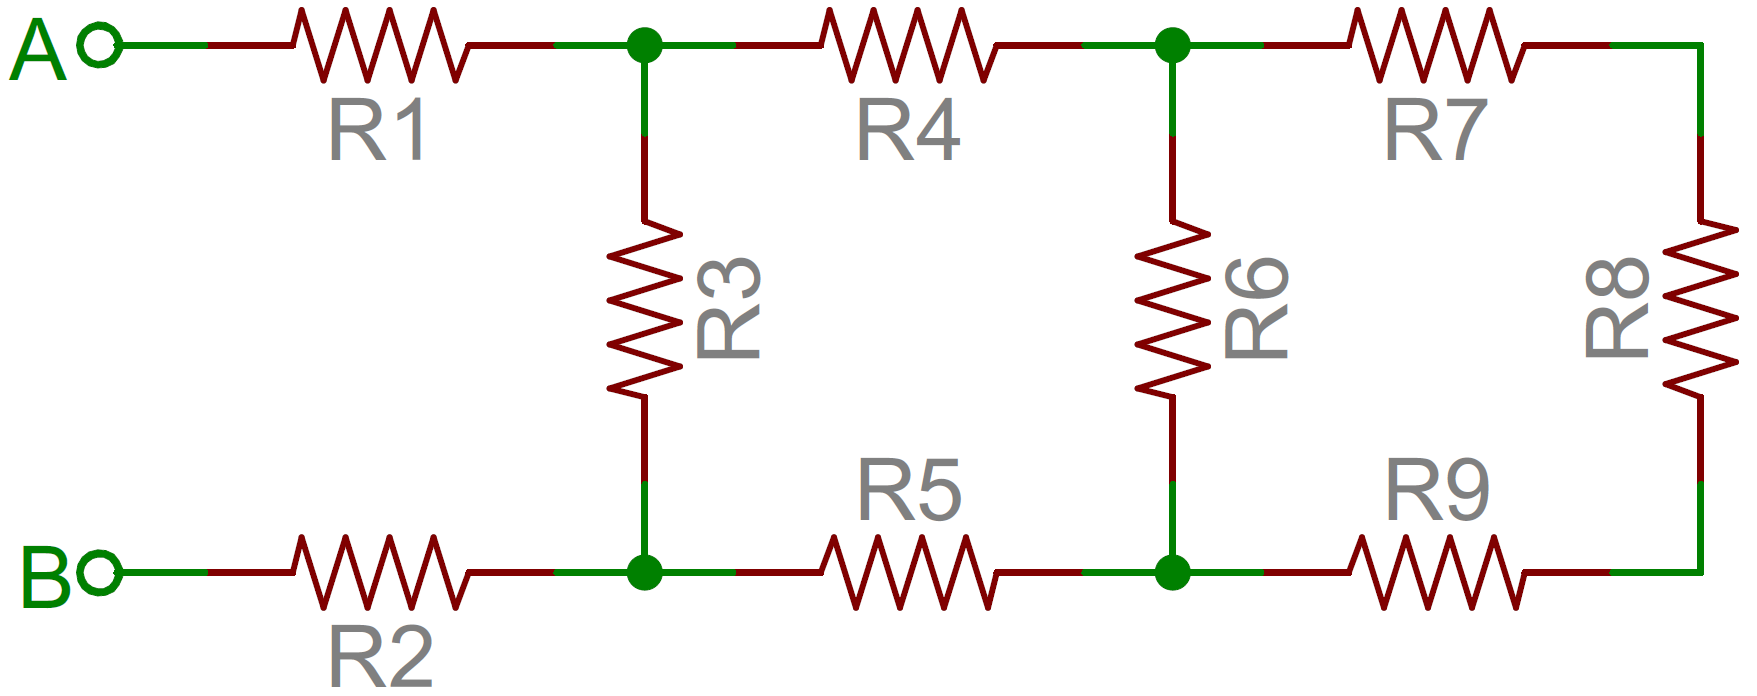 Resistors Circuit Symbols Electrical Schematic Common Electronics Components An Example Of A Resistor Network